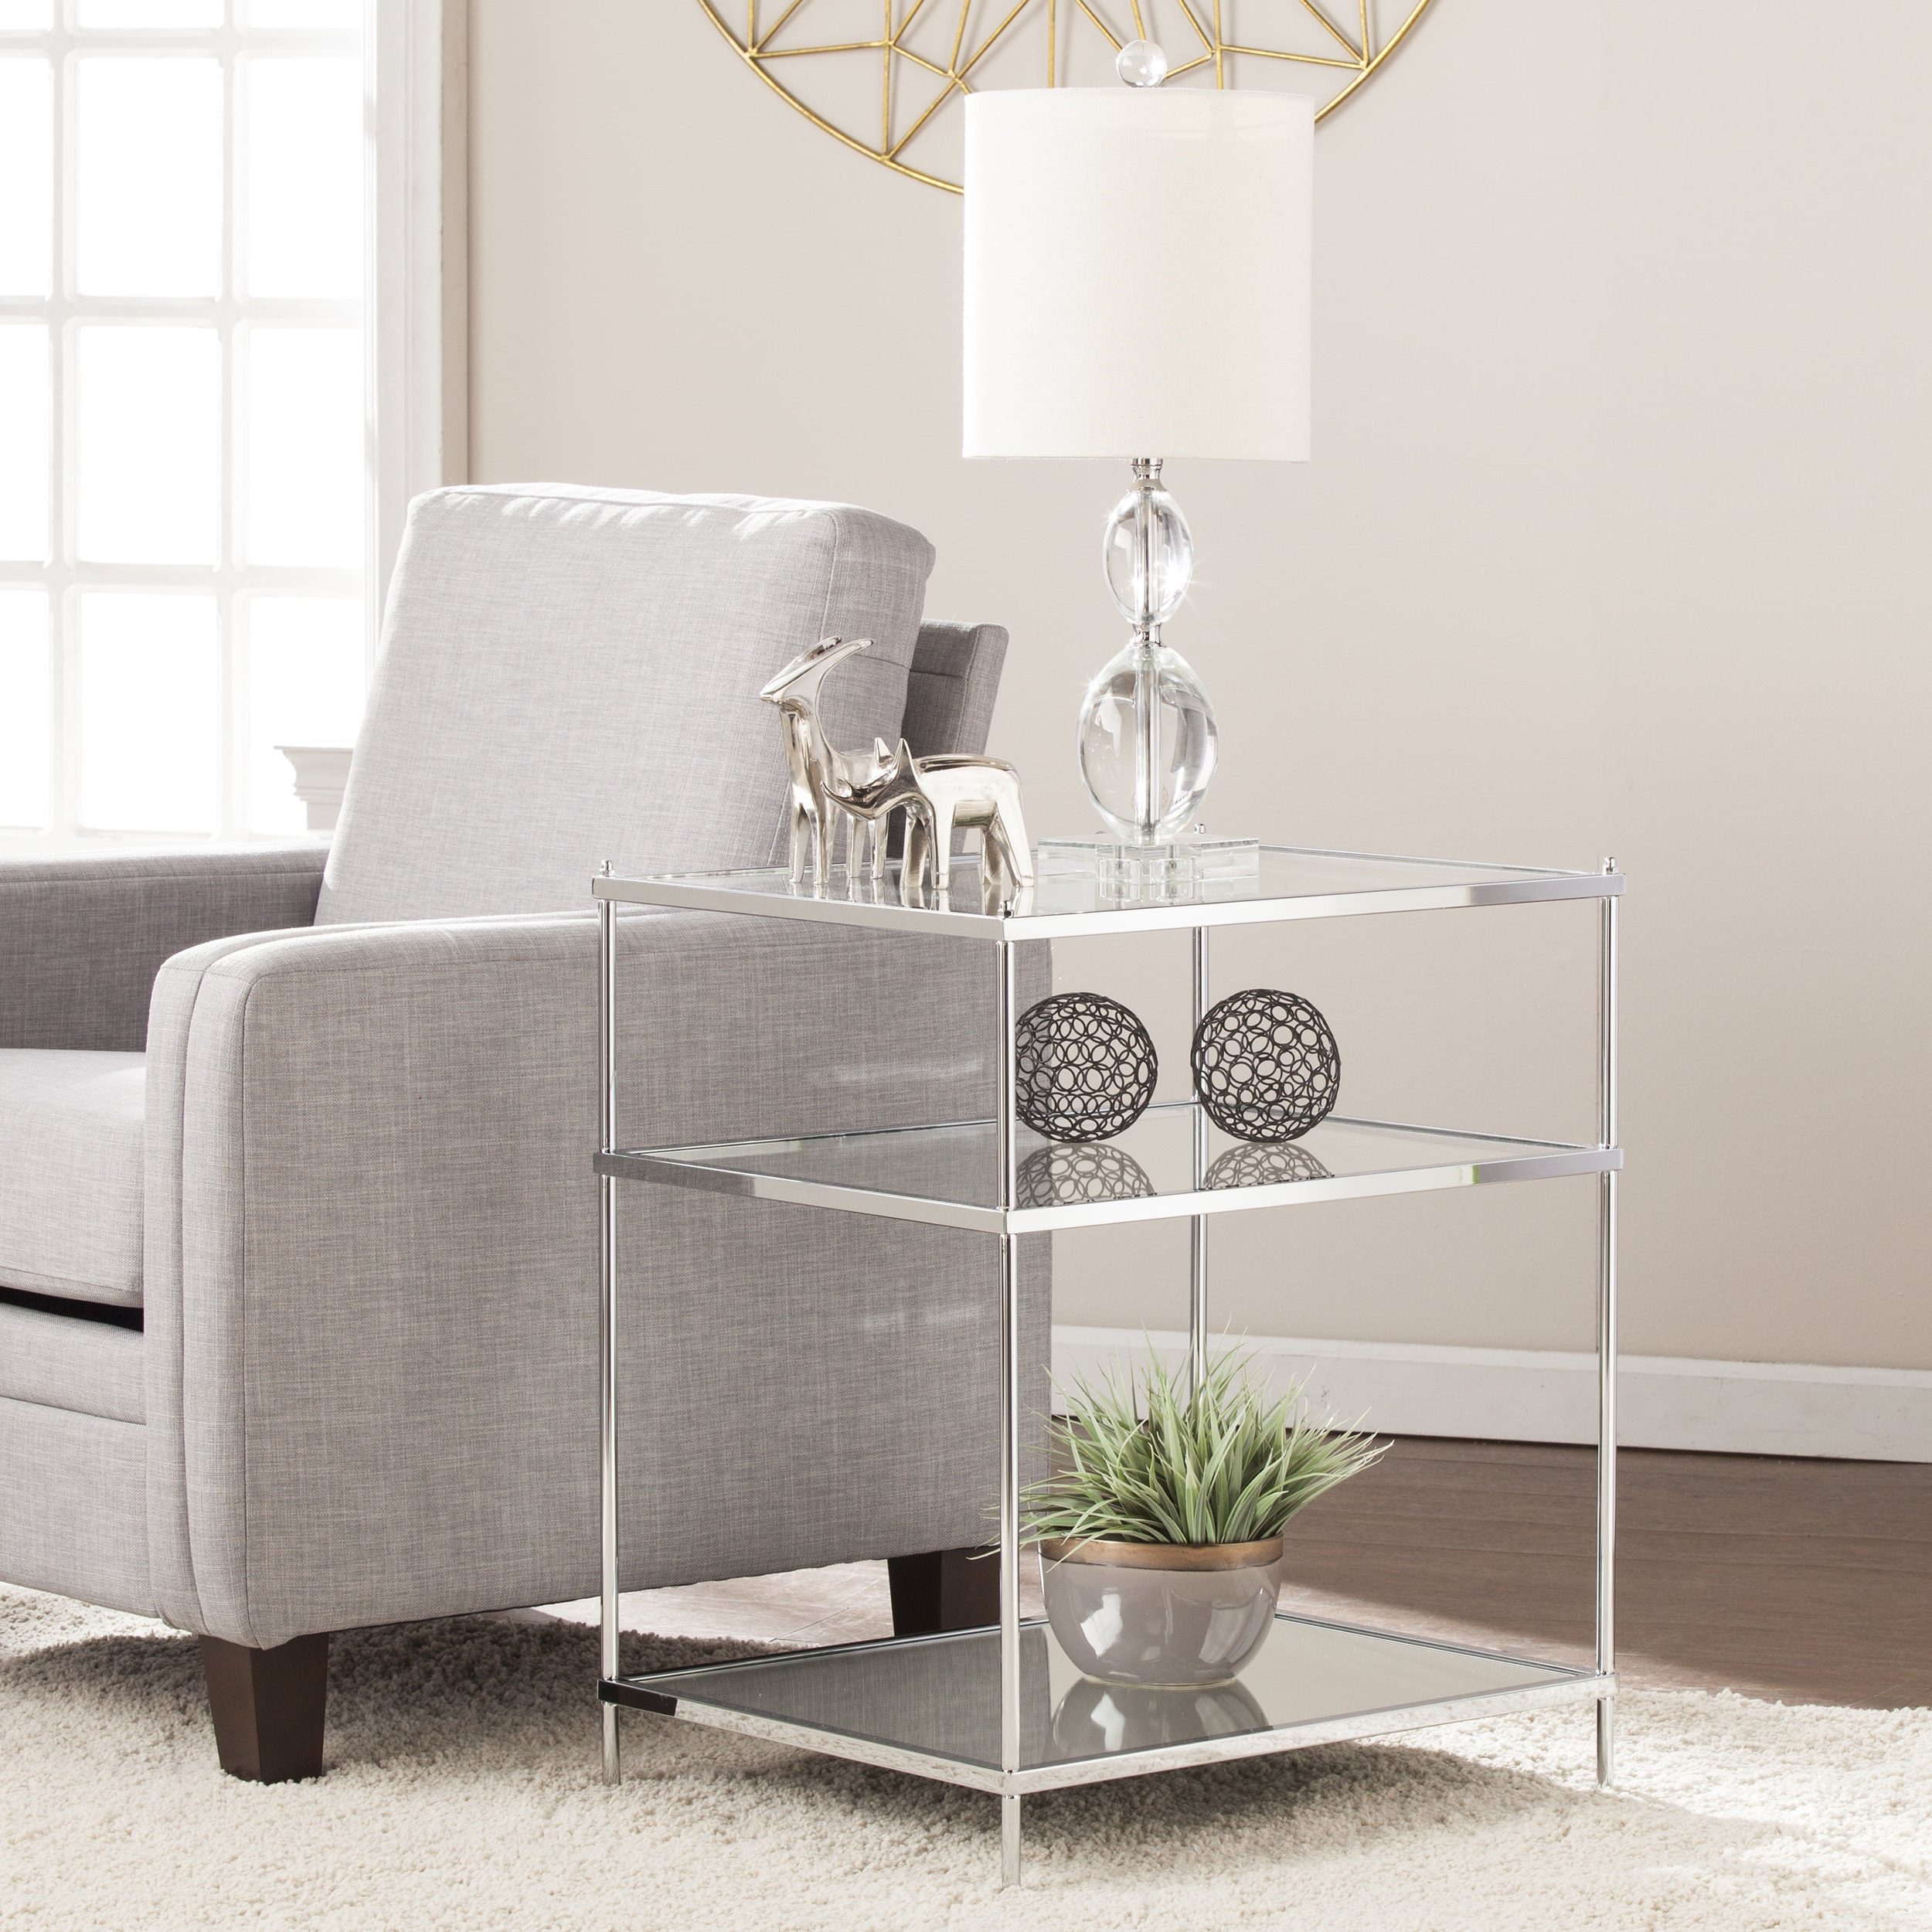 Silver Orchid Olivia Glam Mirrored Side Table Chrome Within Current Silver Orchid Olivia Glam Mirrored Round Cocktail Tables (View 7 of 20)